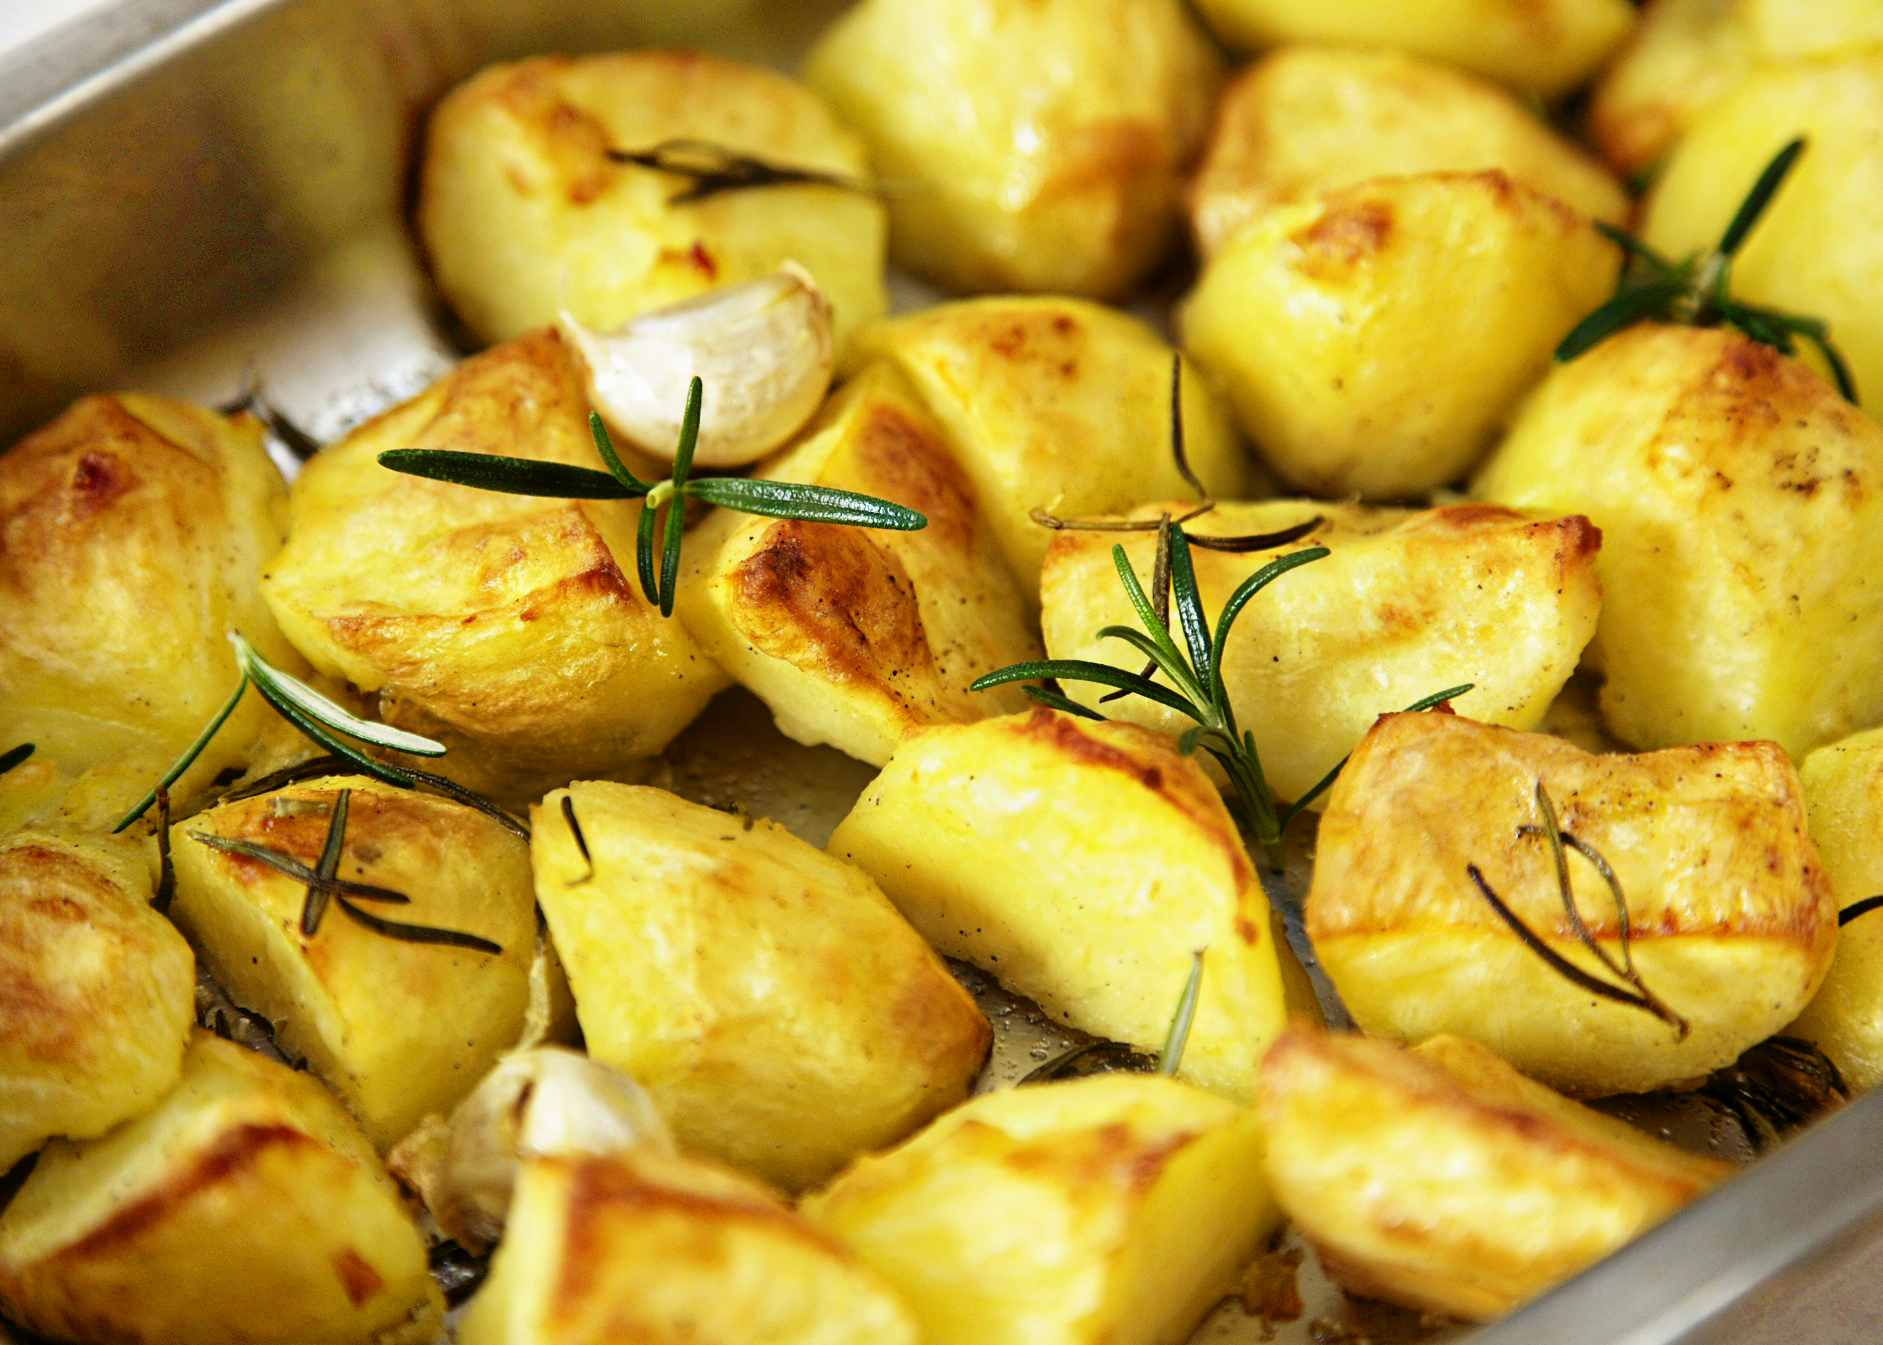 roast potatoes with rosemary and garlic 2A